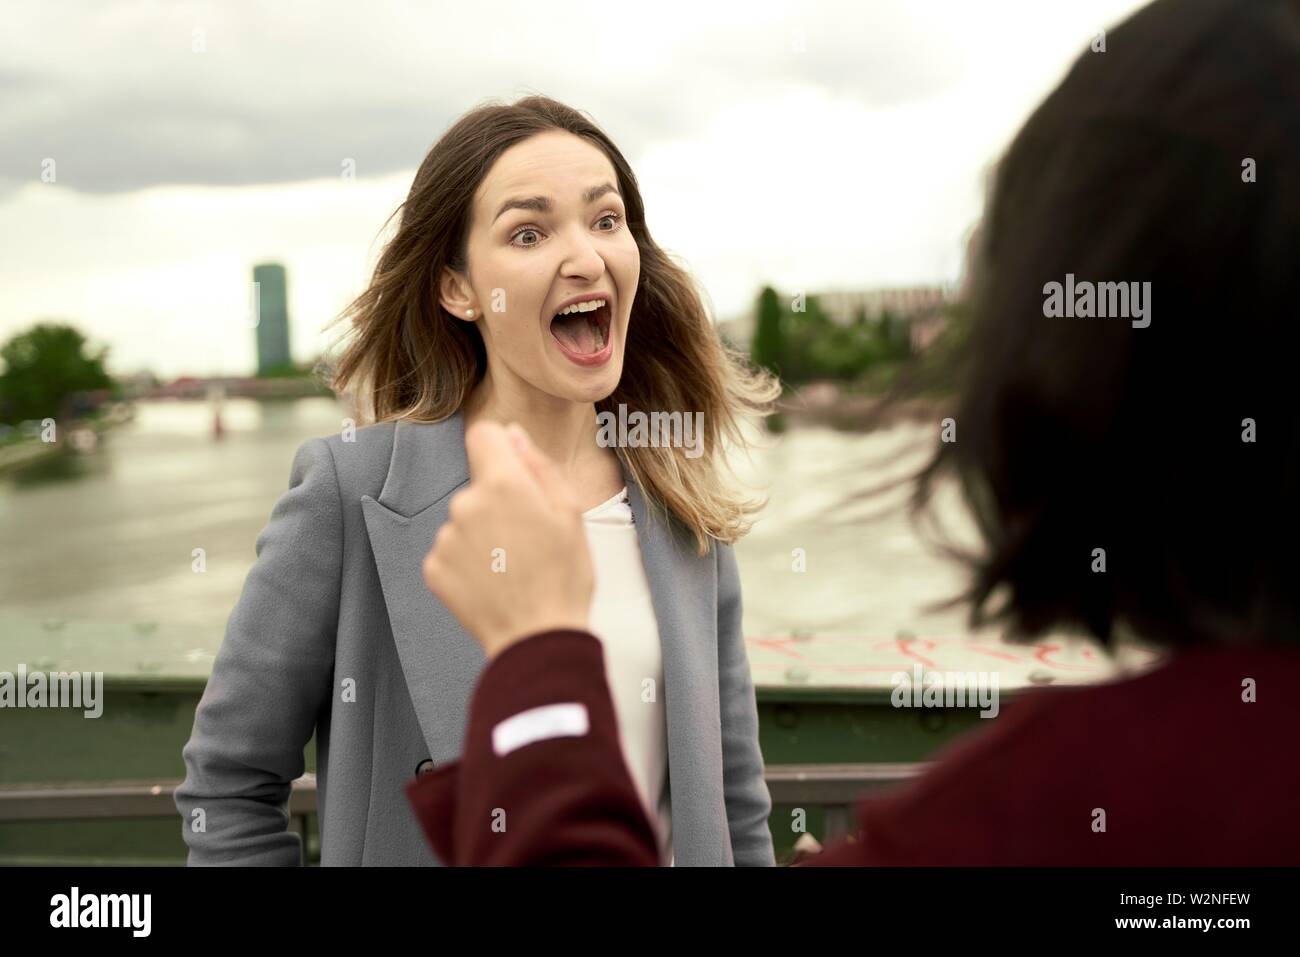 excited woman talking to opponent on bridge over river Main, in Frankfurt am Main, Germany Stock Photo